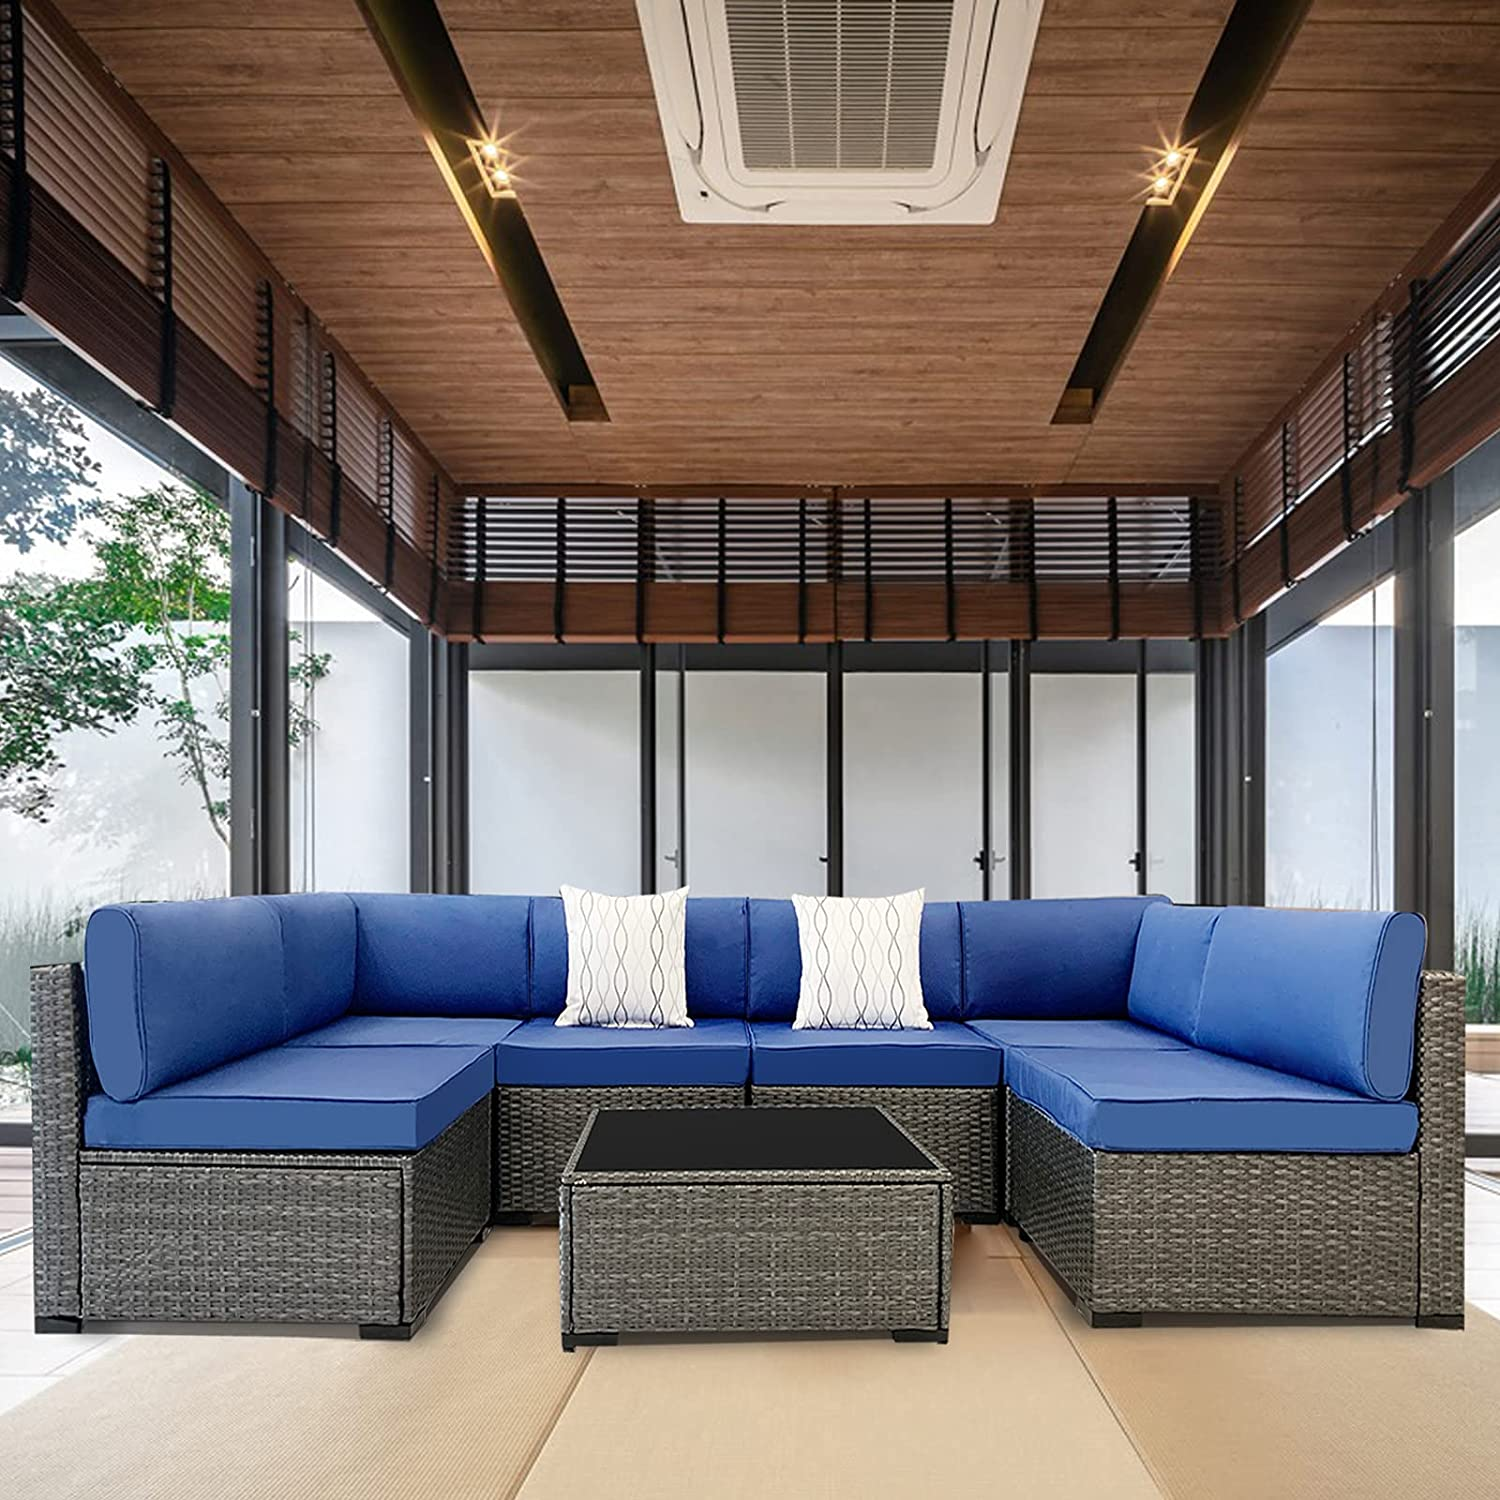 VisHomeYard 7 Pieces Outdoor Patio Furniture Set All Weather PE Rattan Sofa Chair Set Outdoor Sectional Wicker Conversation Sofa Sets with Cushions and Glass Table (Blue)